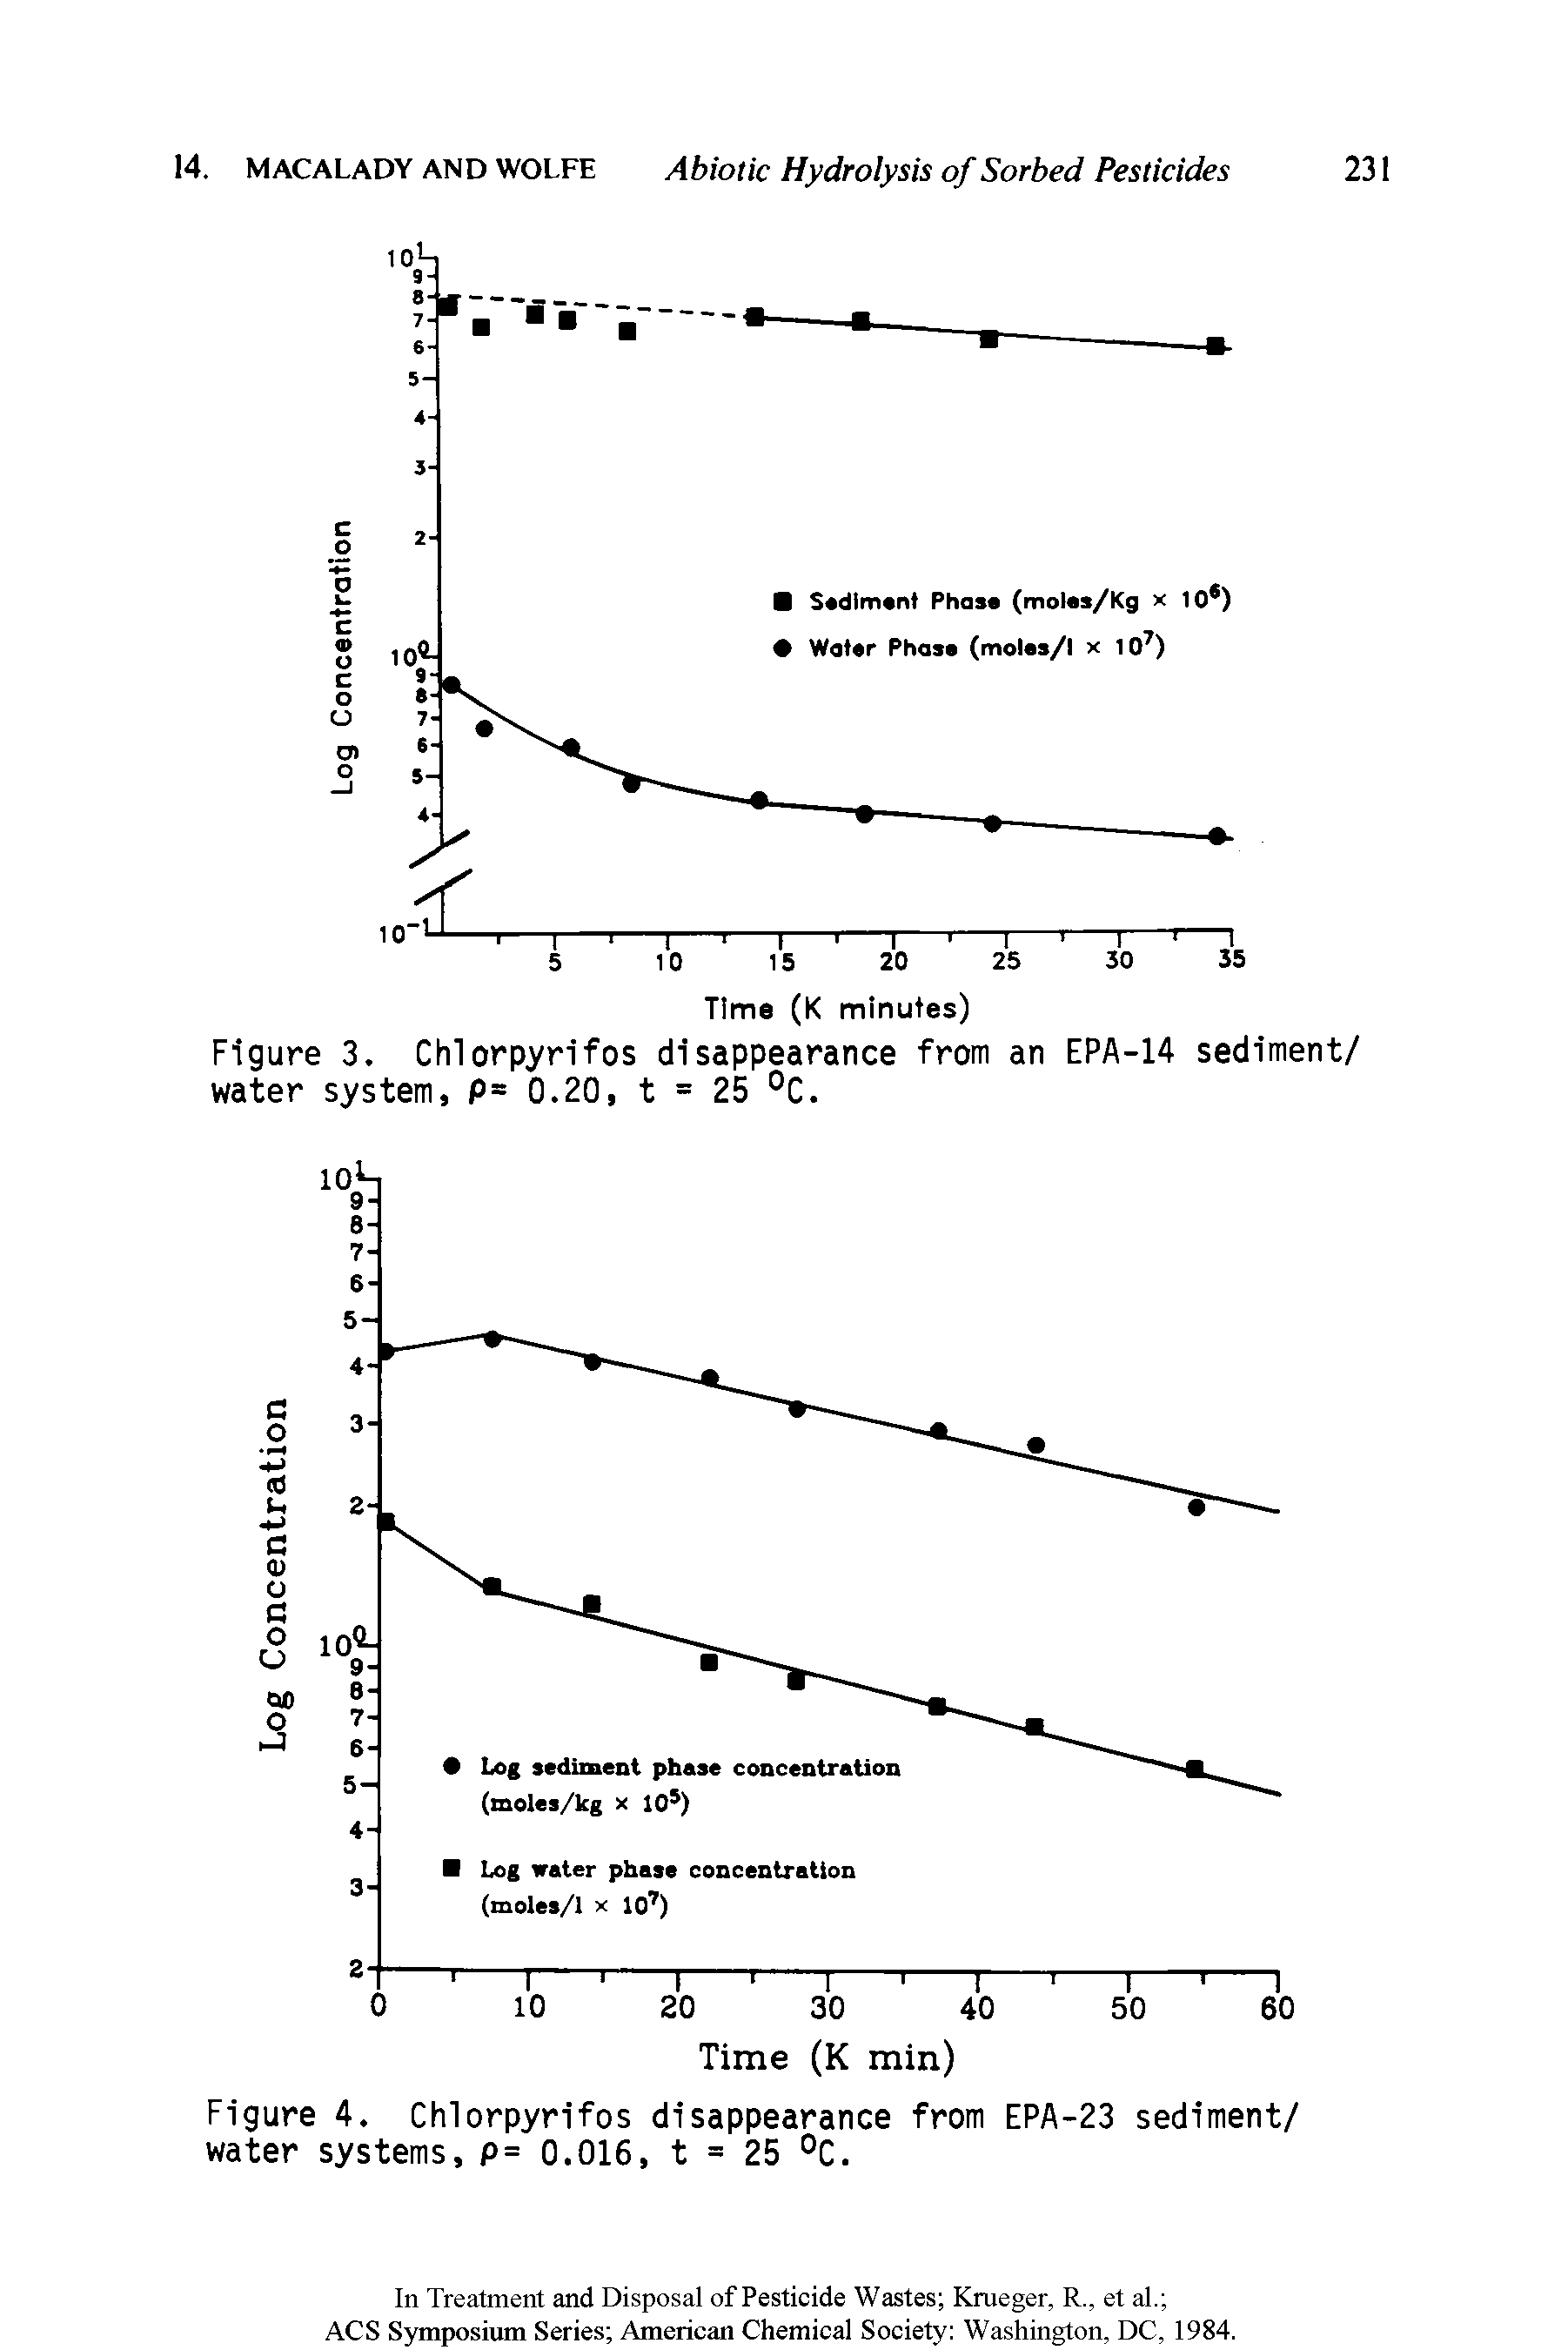 Figure 3. Chlorpyrifos disappearance from an EPA-14 sediment/ water system, P= 0.20, t = 25 °C.